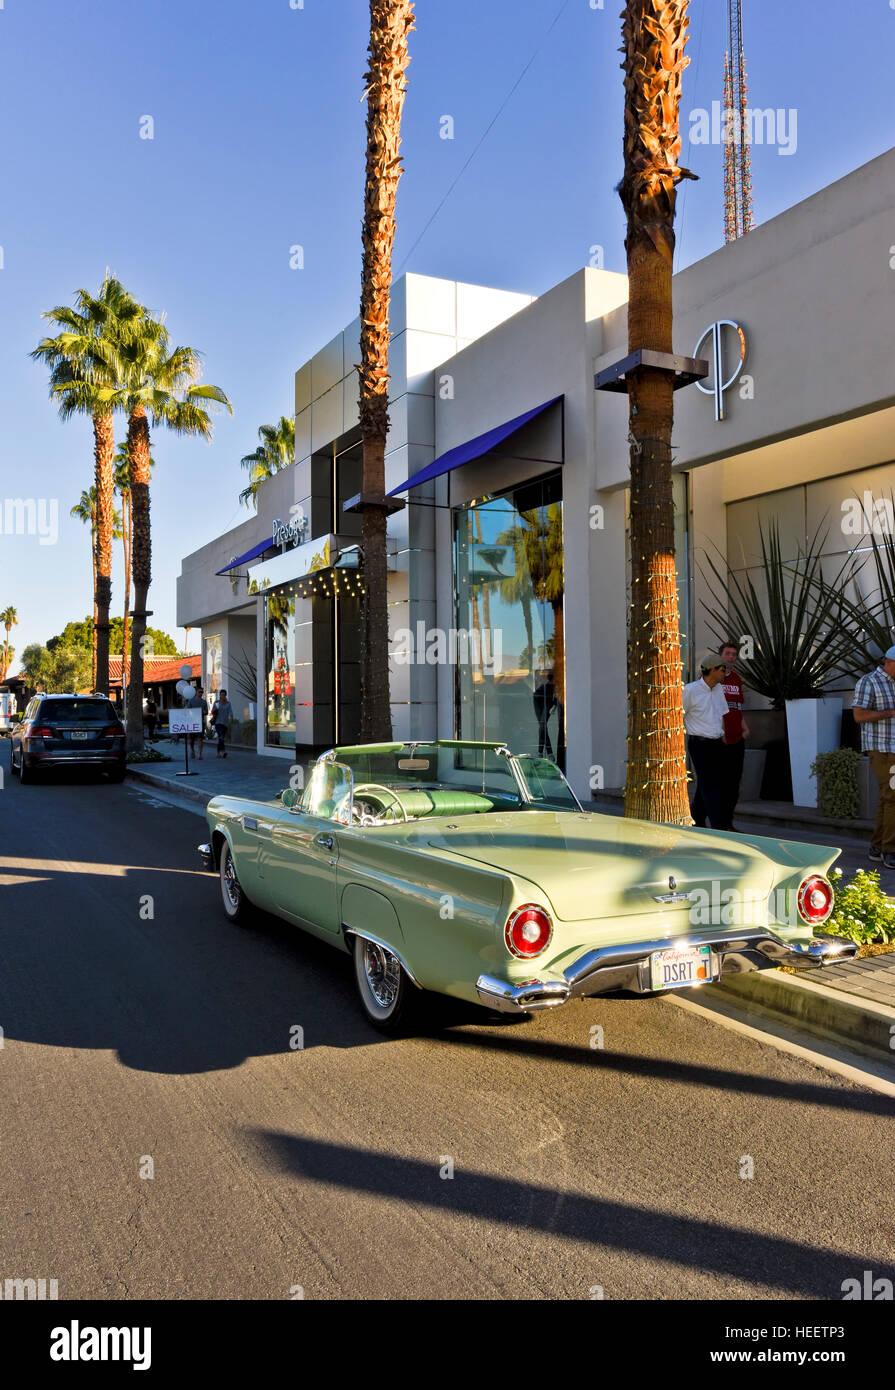 Prestige upscale shopping with a convertible 1960's T-Bird in front of store on El Paseo Drive - Stock Image